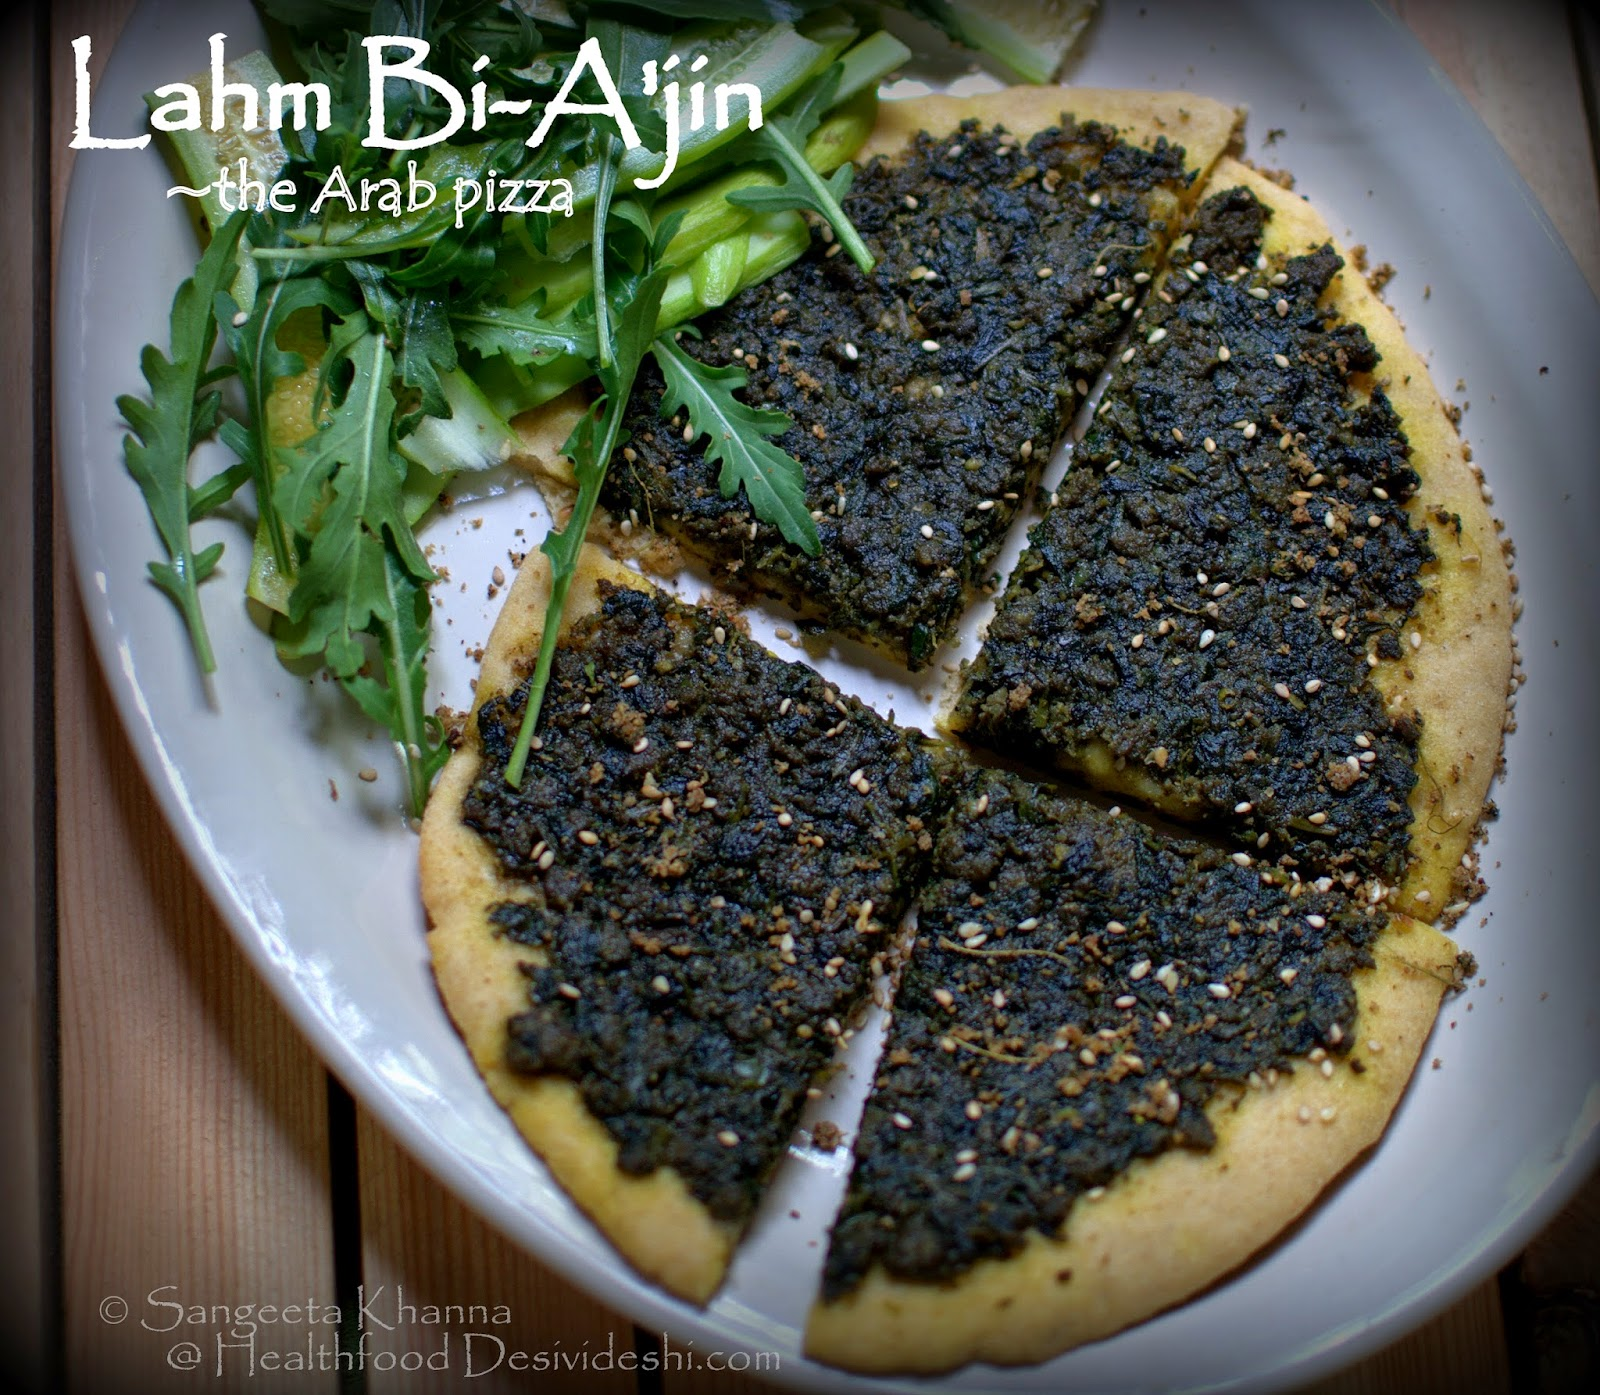 Lahm Bi-A'jin, Lahmajun or Sfiha, a middle eastern bread with mutton mince and purslane topping | the Arab pizza made my way